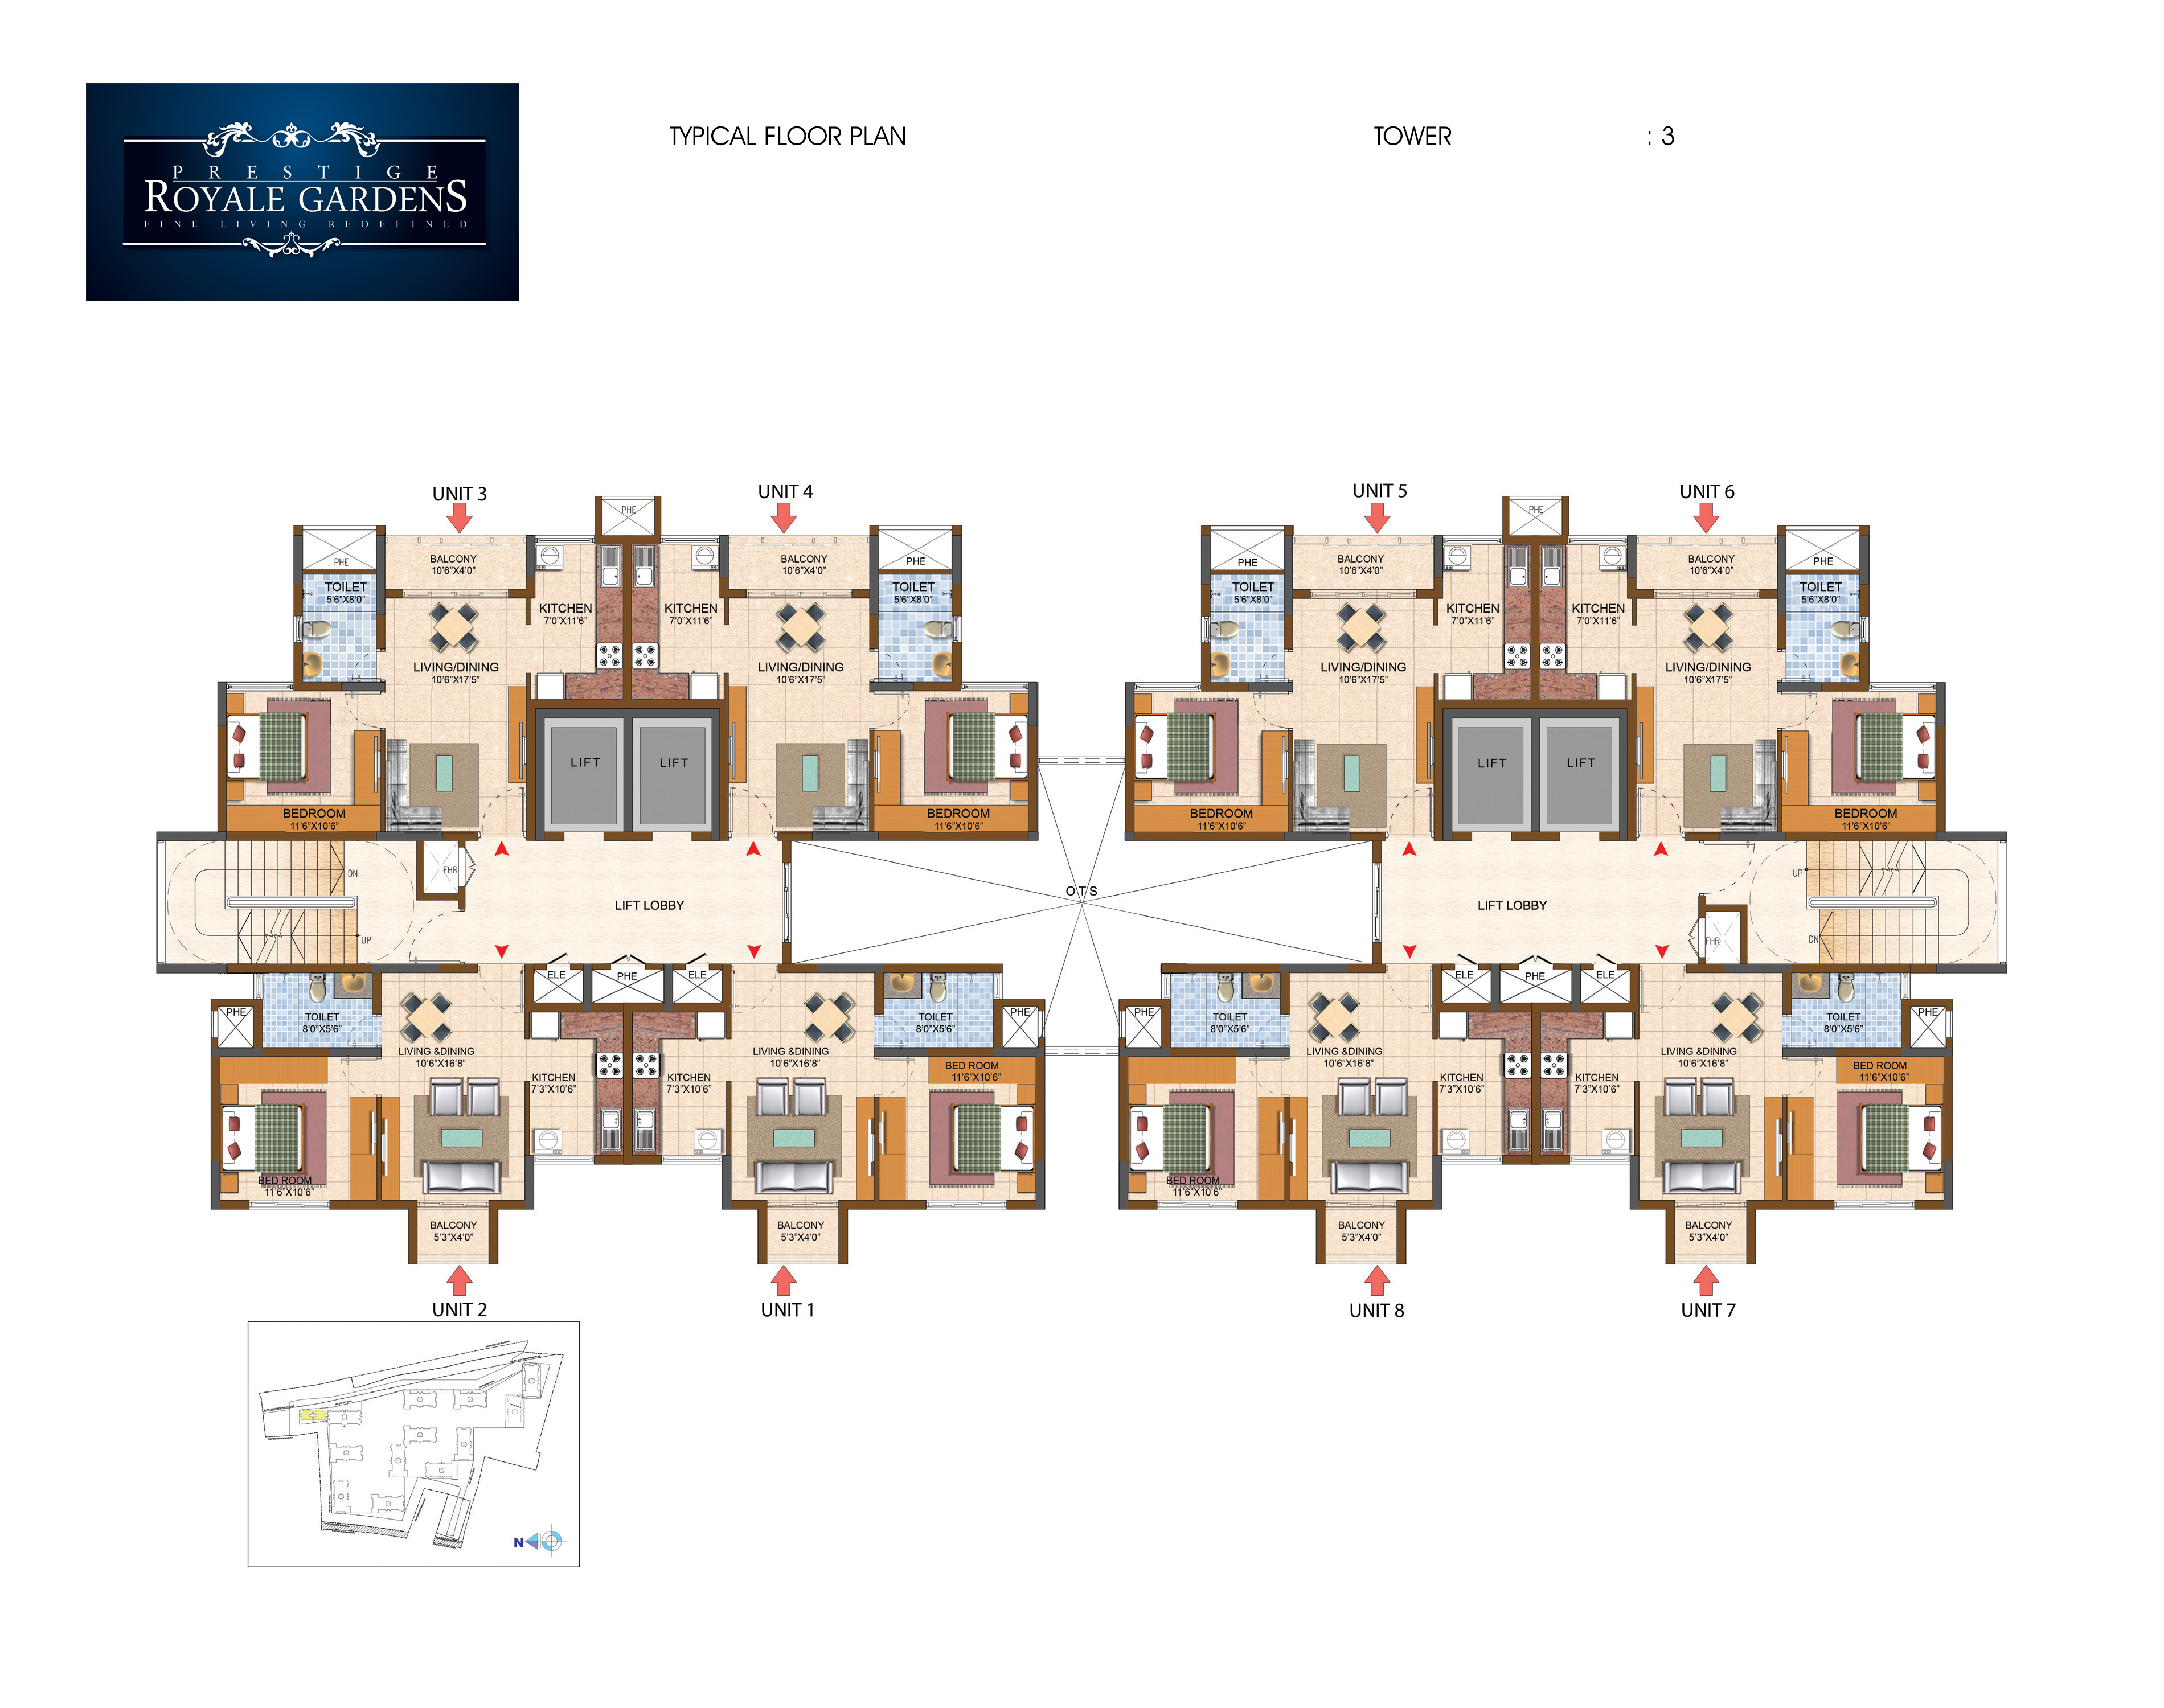 Prestige Royale Gardens - Typical Floor Plan, Tower 3